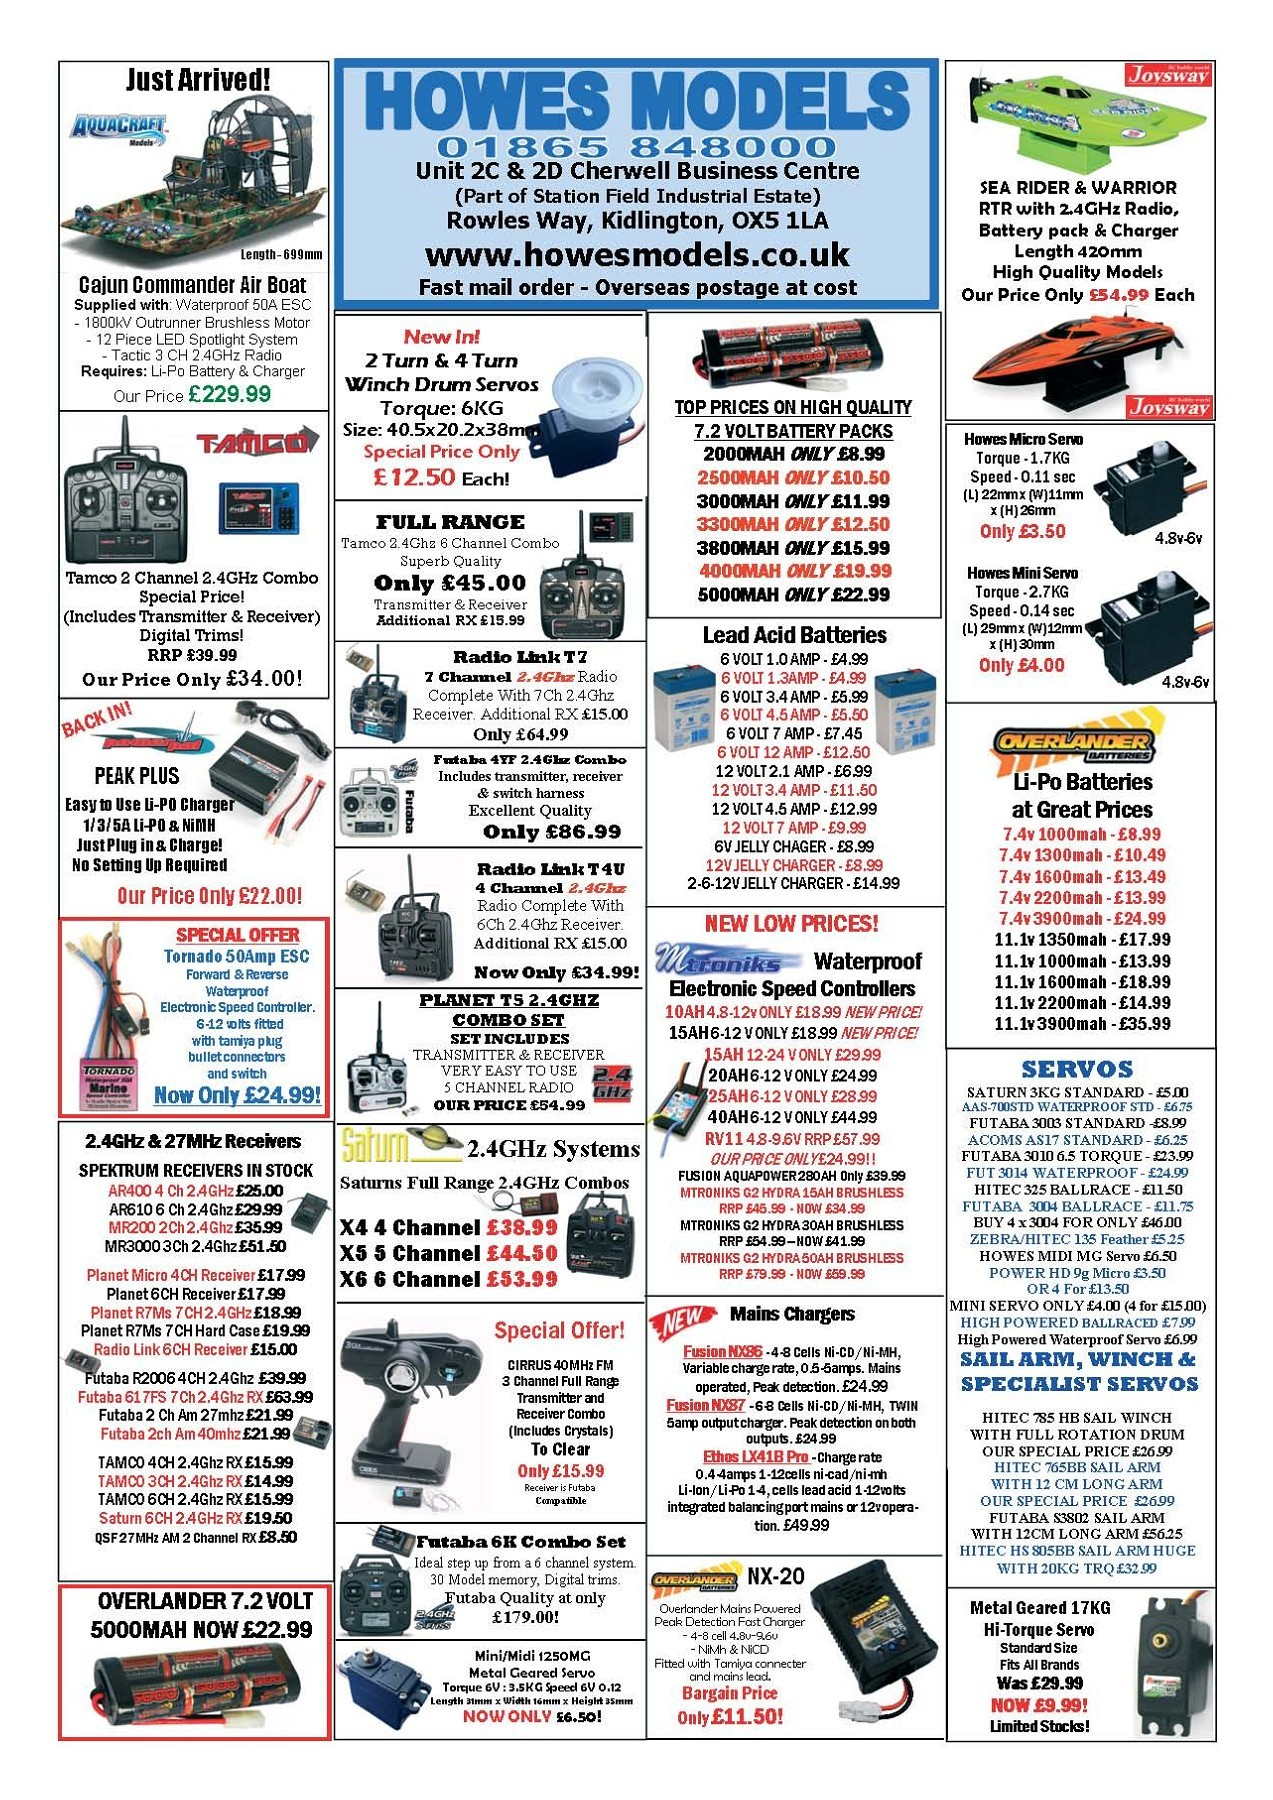 hight resolution of marine modelling january 2016 pages 1 50 text version fliphtml5 deben wiring loom to 12v battery glasgow field sports